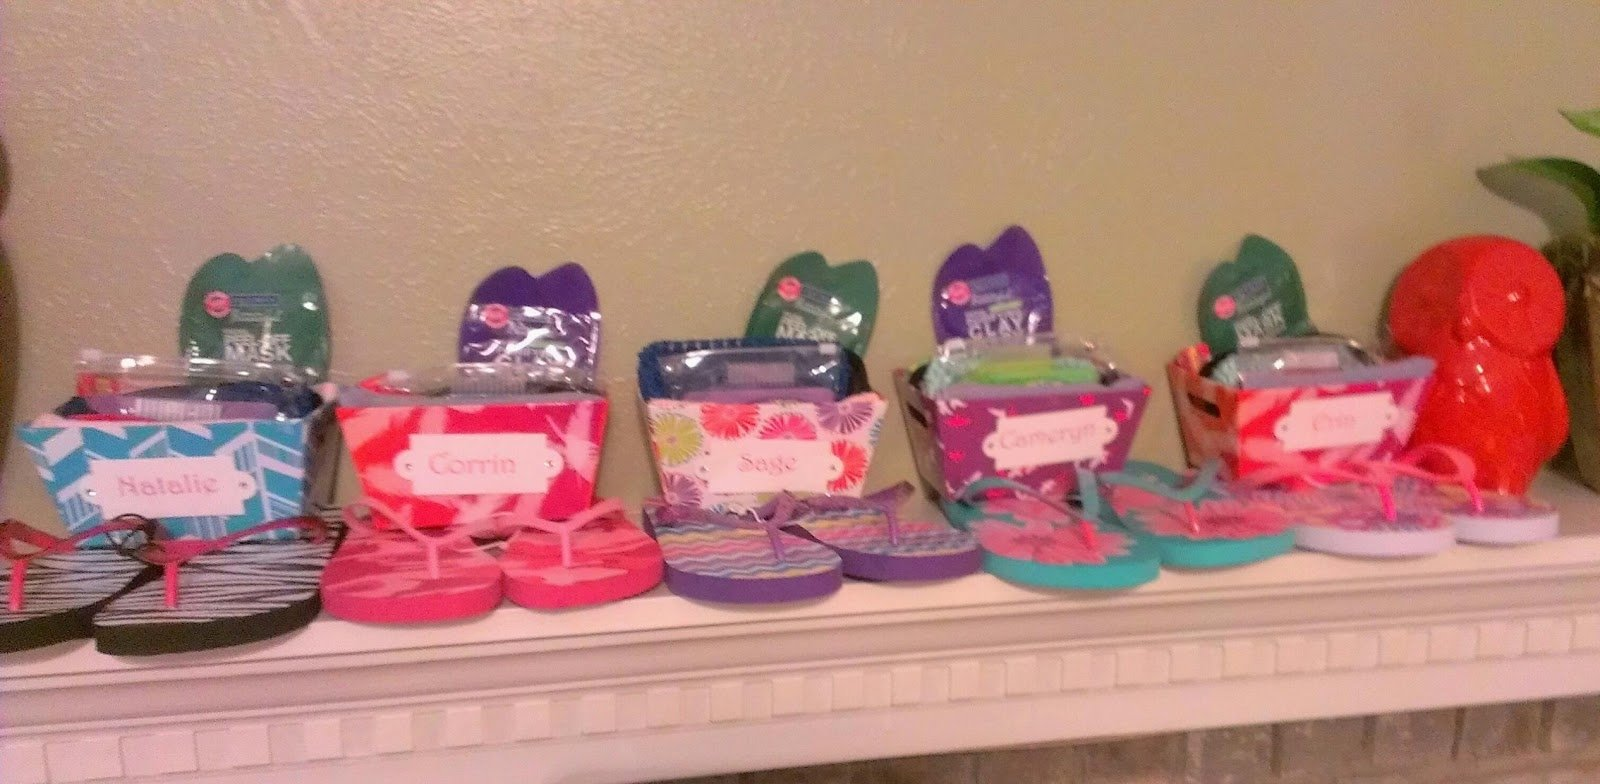 10 Best 11 Year Old Girl Birthday Party Ideas organized designby jess party time spa birthday party 3 2020